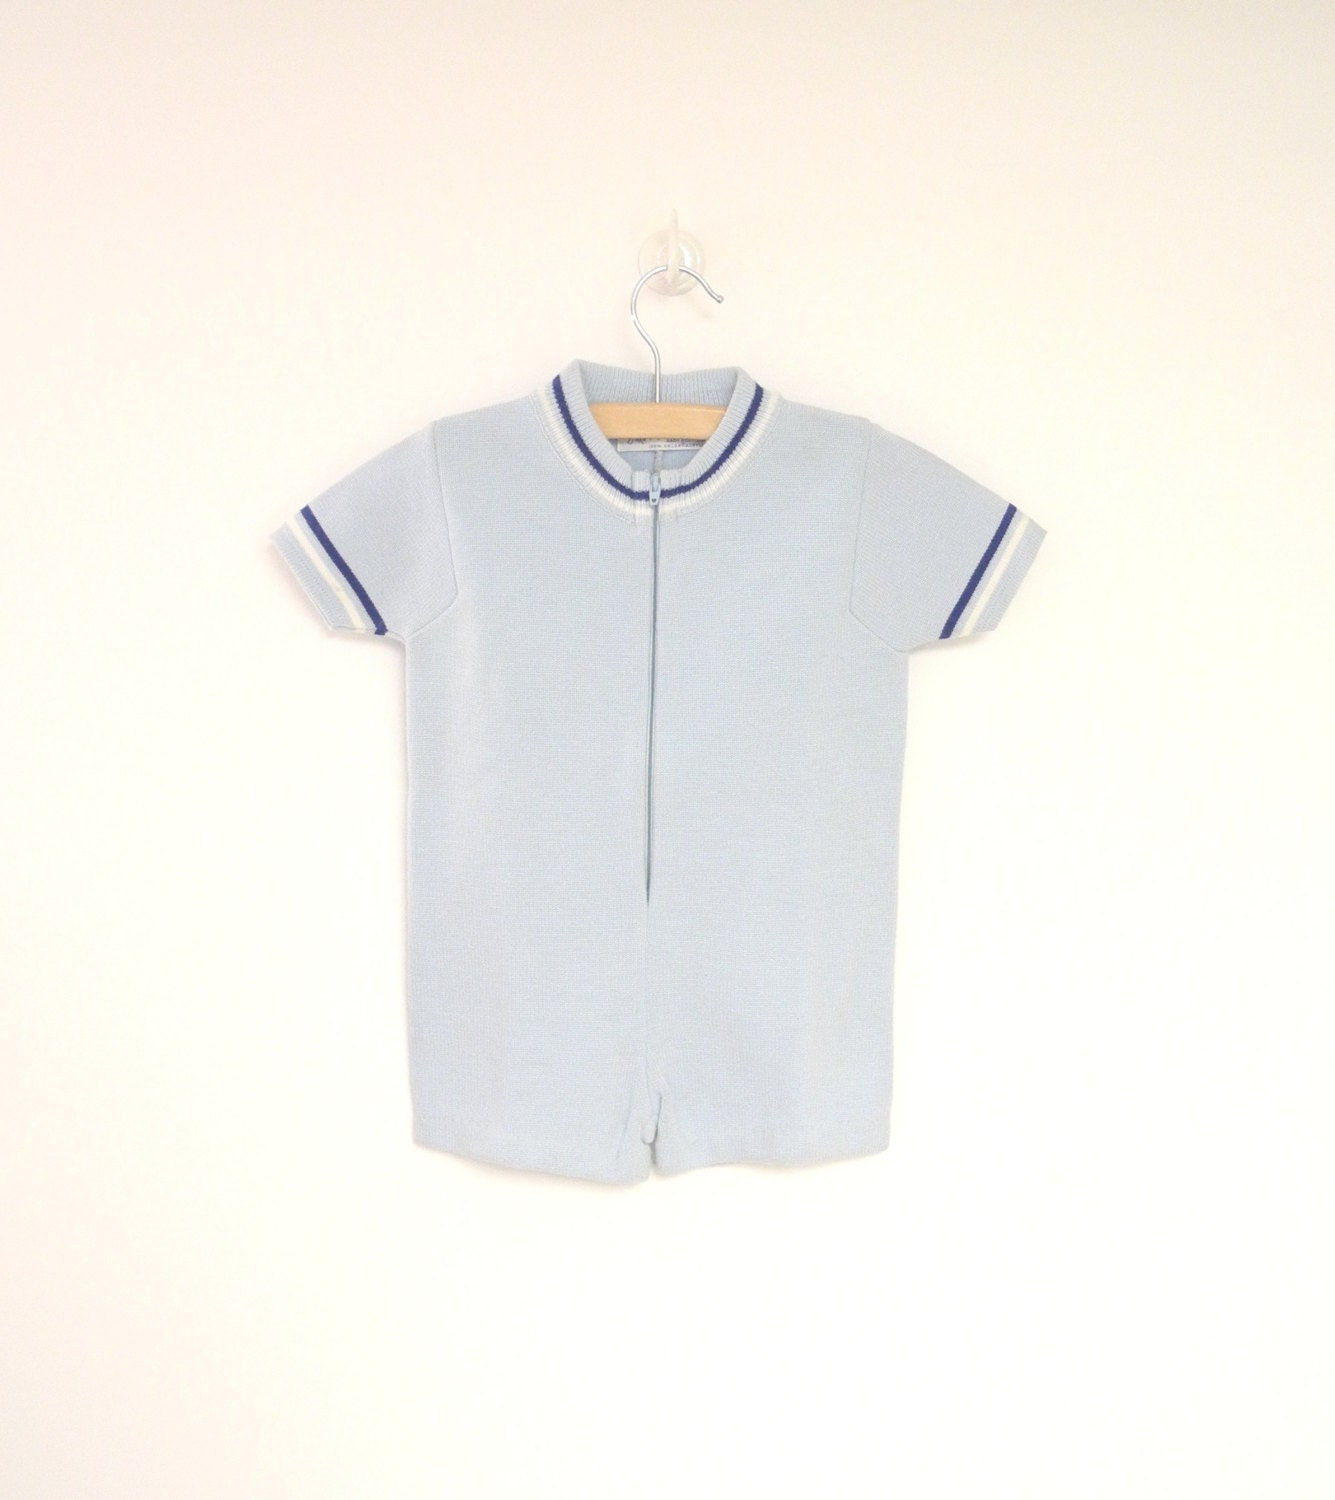 Vintage Baby Clothes 1960 s Saks Fifth Avenue Light Blue